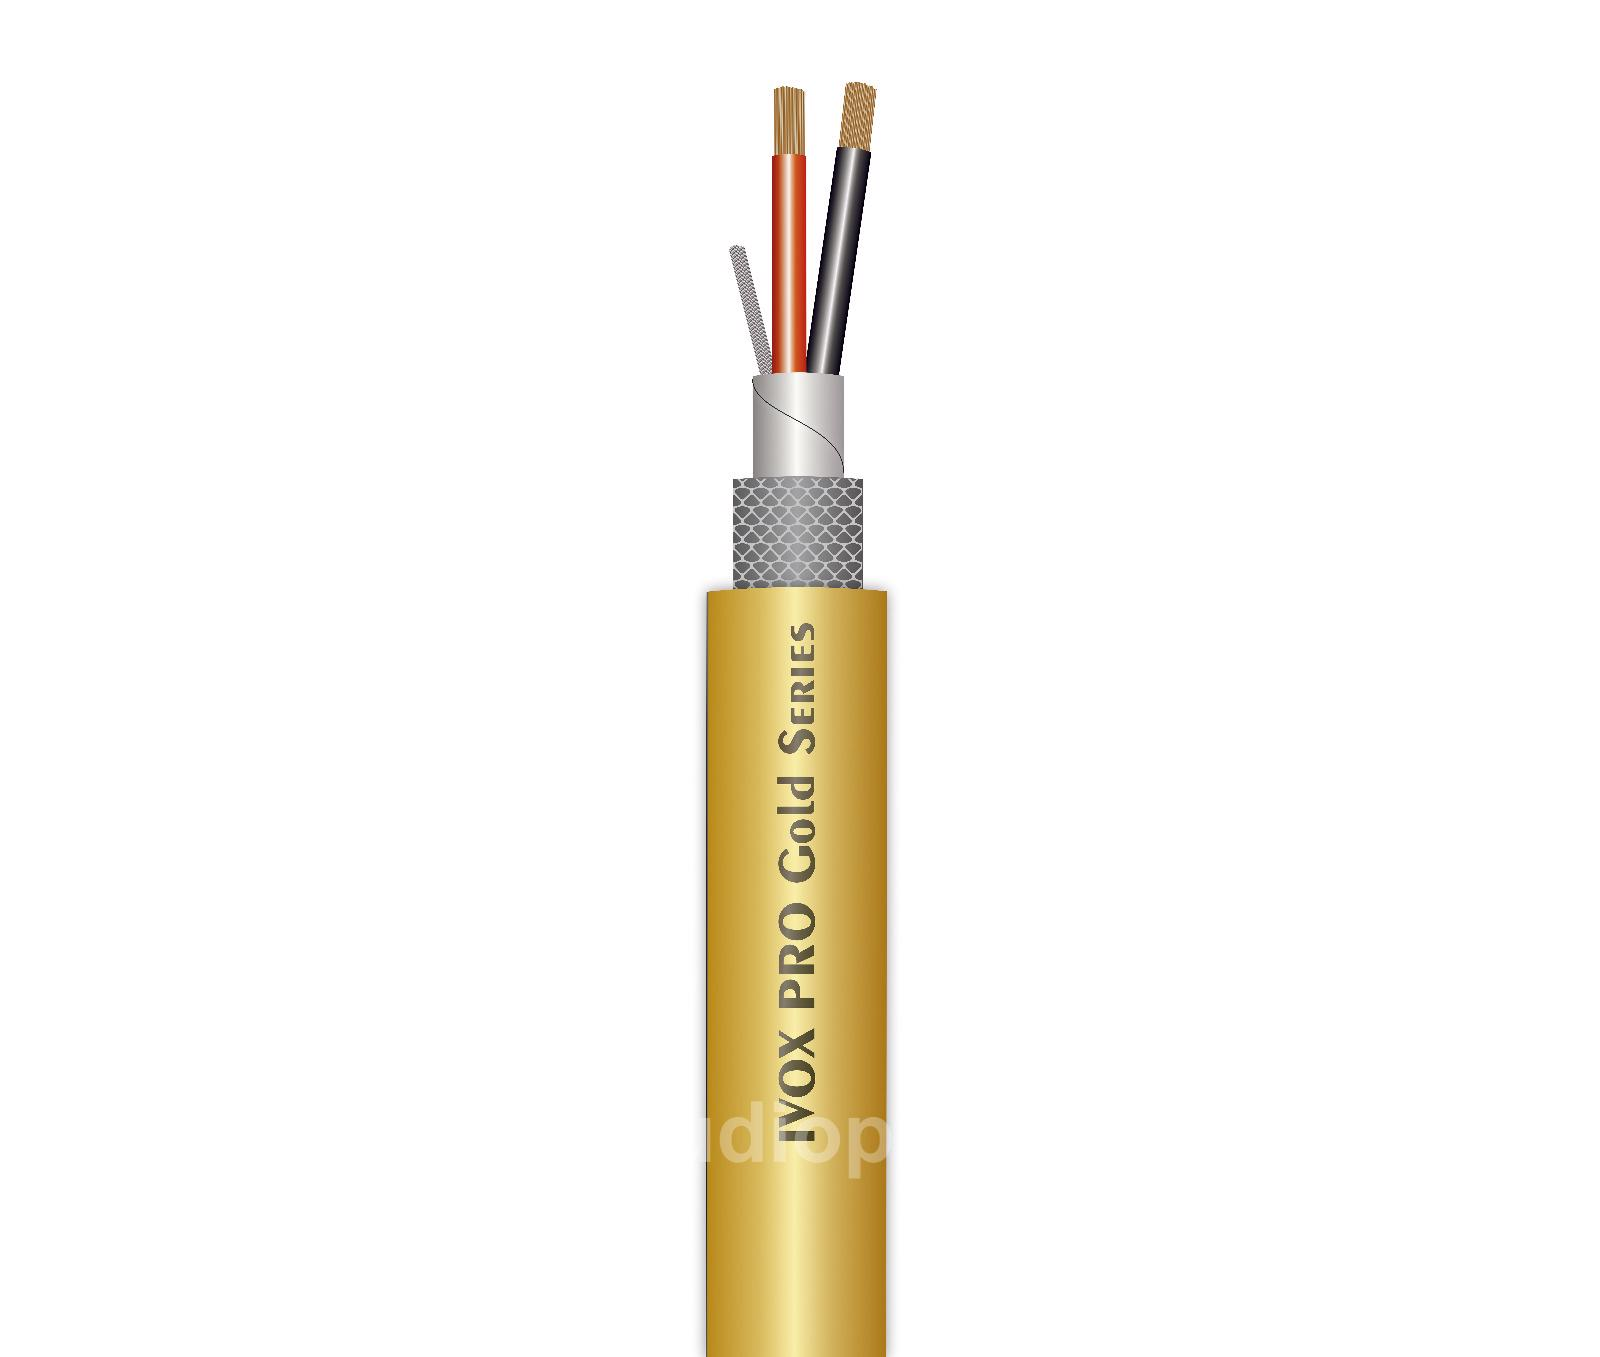 Ivox pro gold series speaker cable 2x2.5 mm2